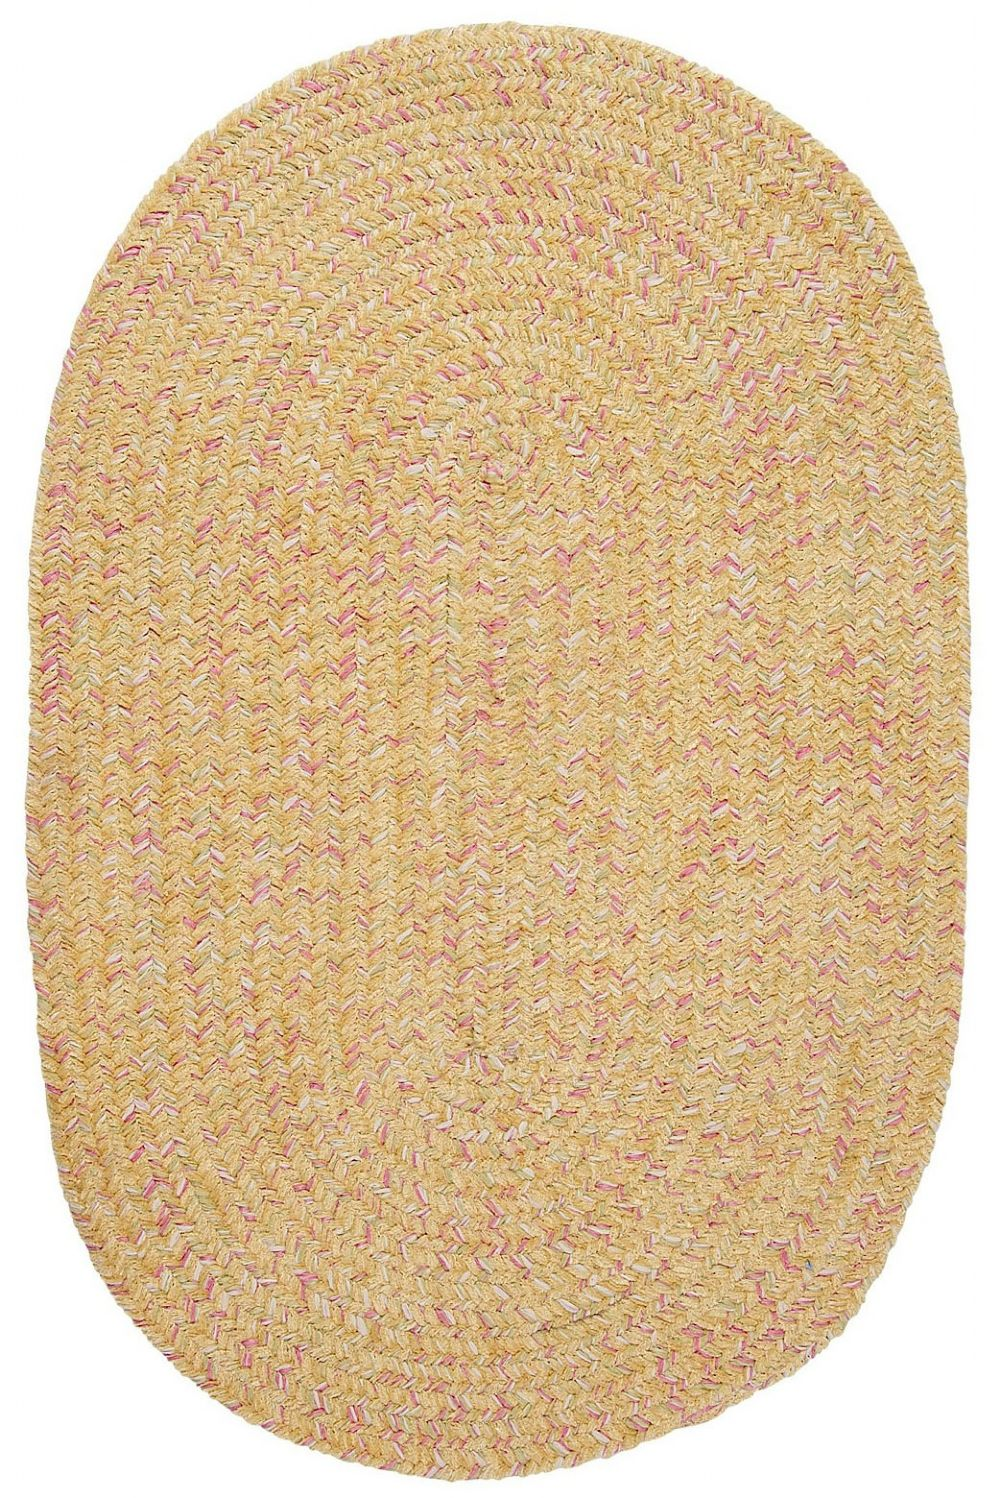 colonial mills west bay braided area rug collection